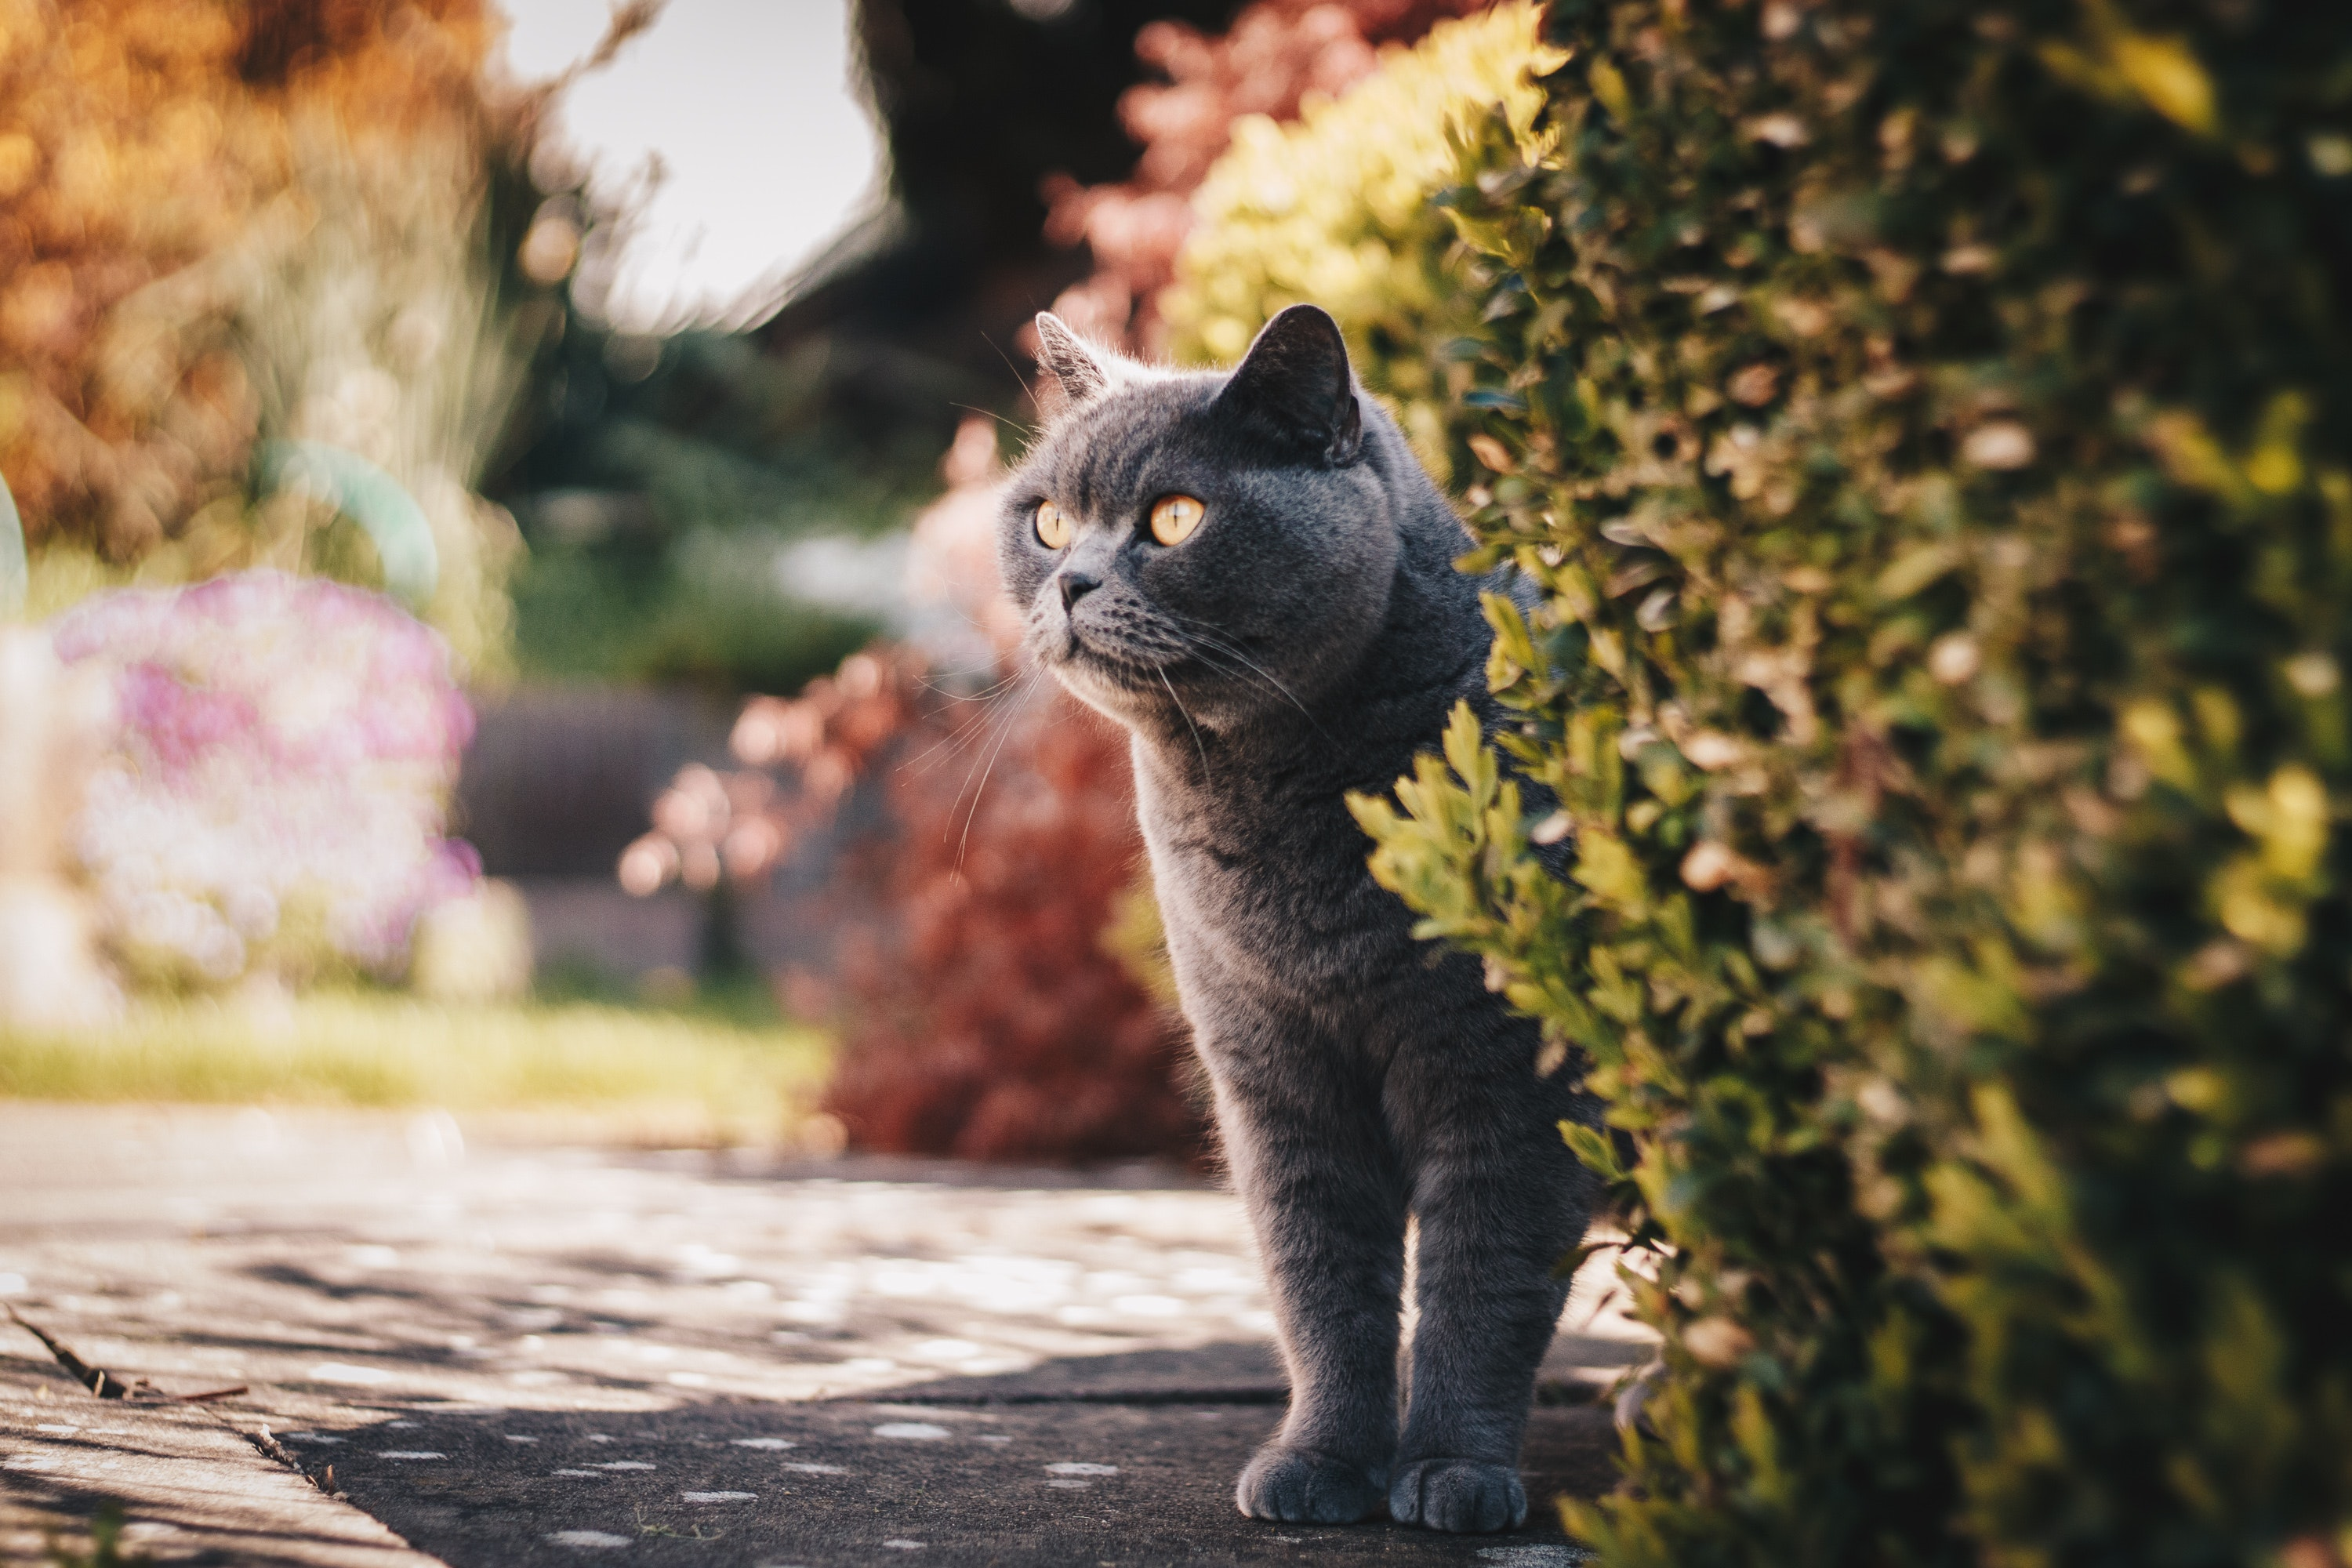 Selective focus photography of a grey cat